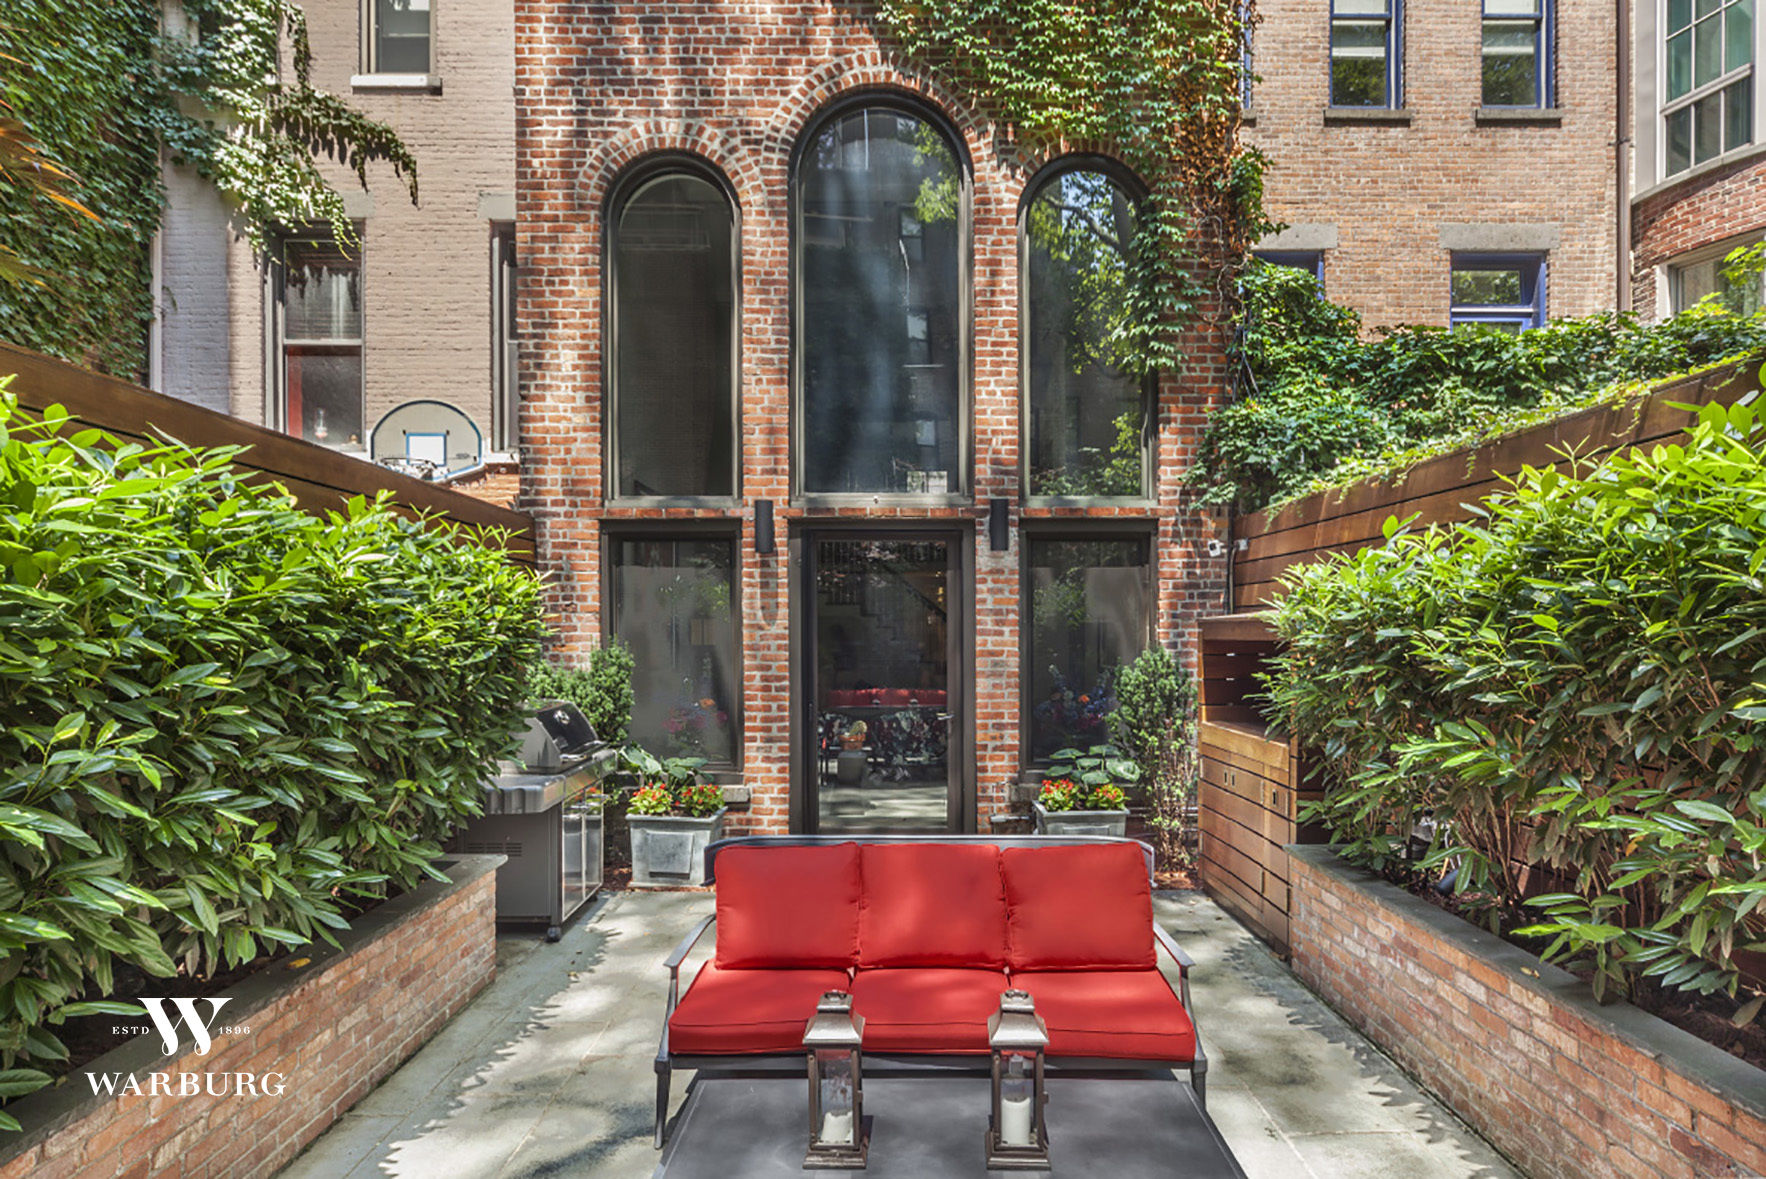 236 East 72nd Street Photo 2 - WR-2980651